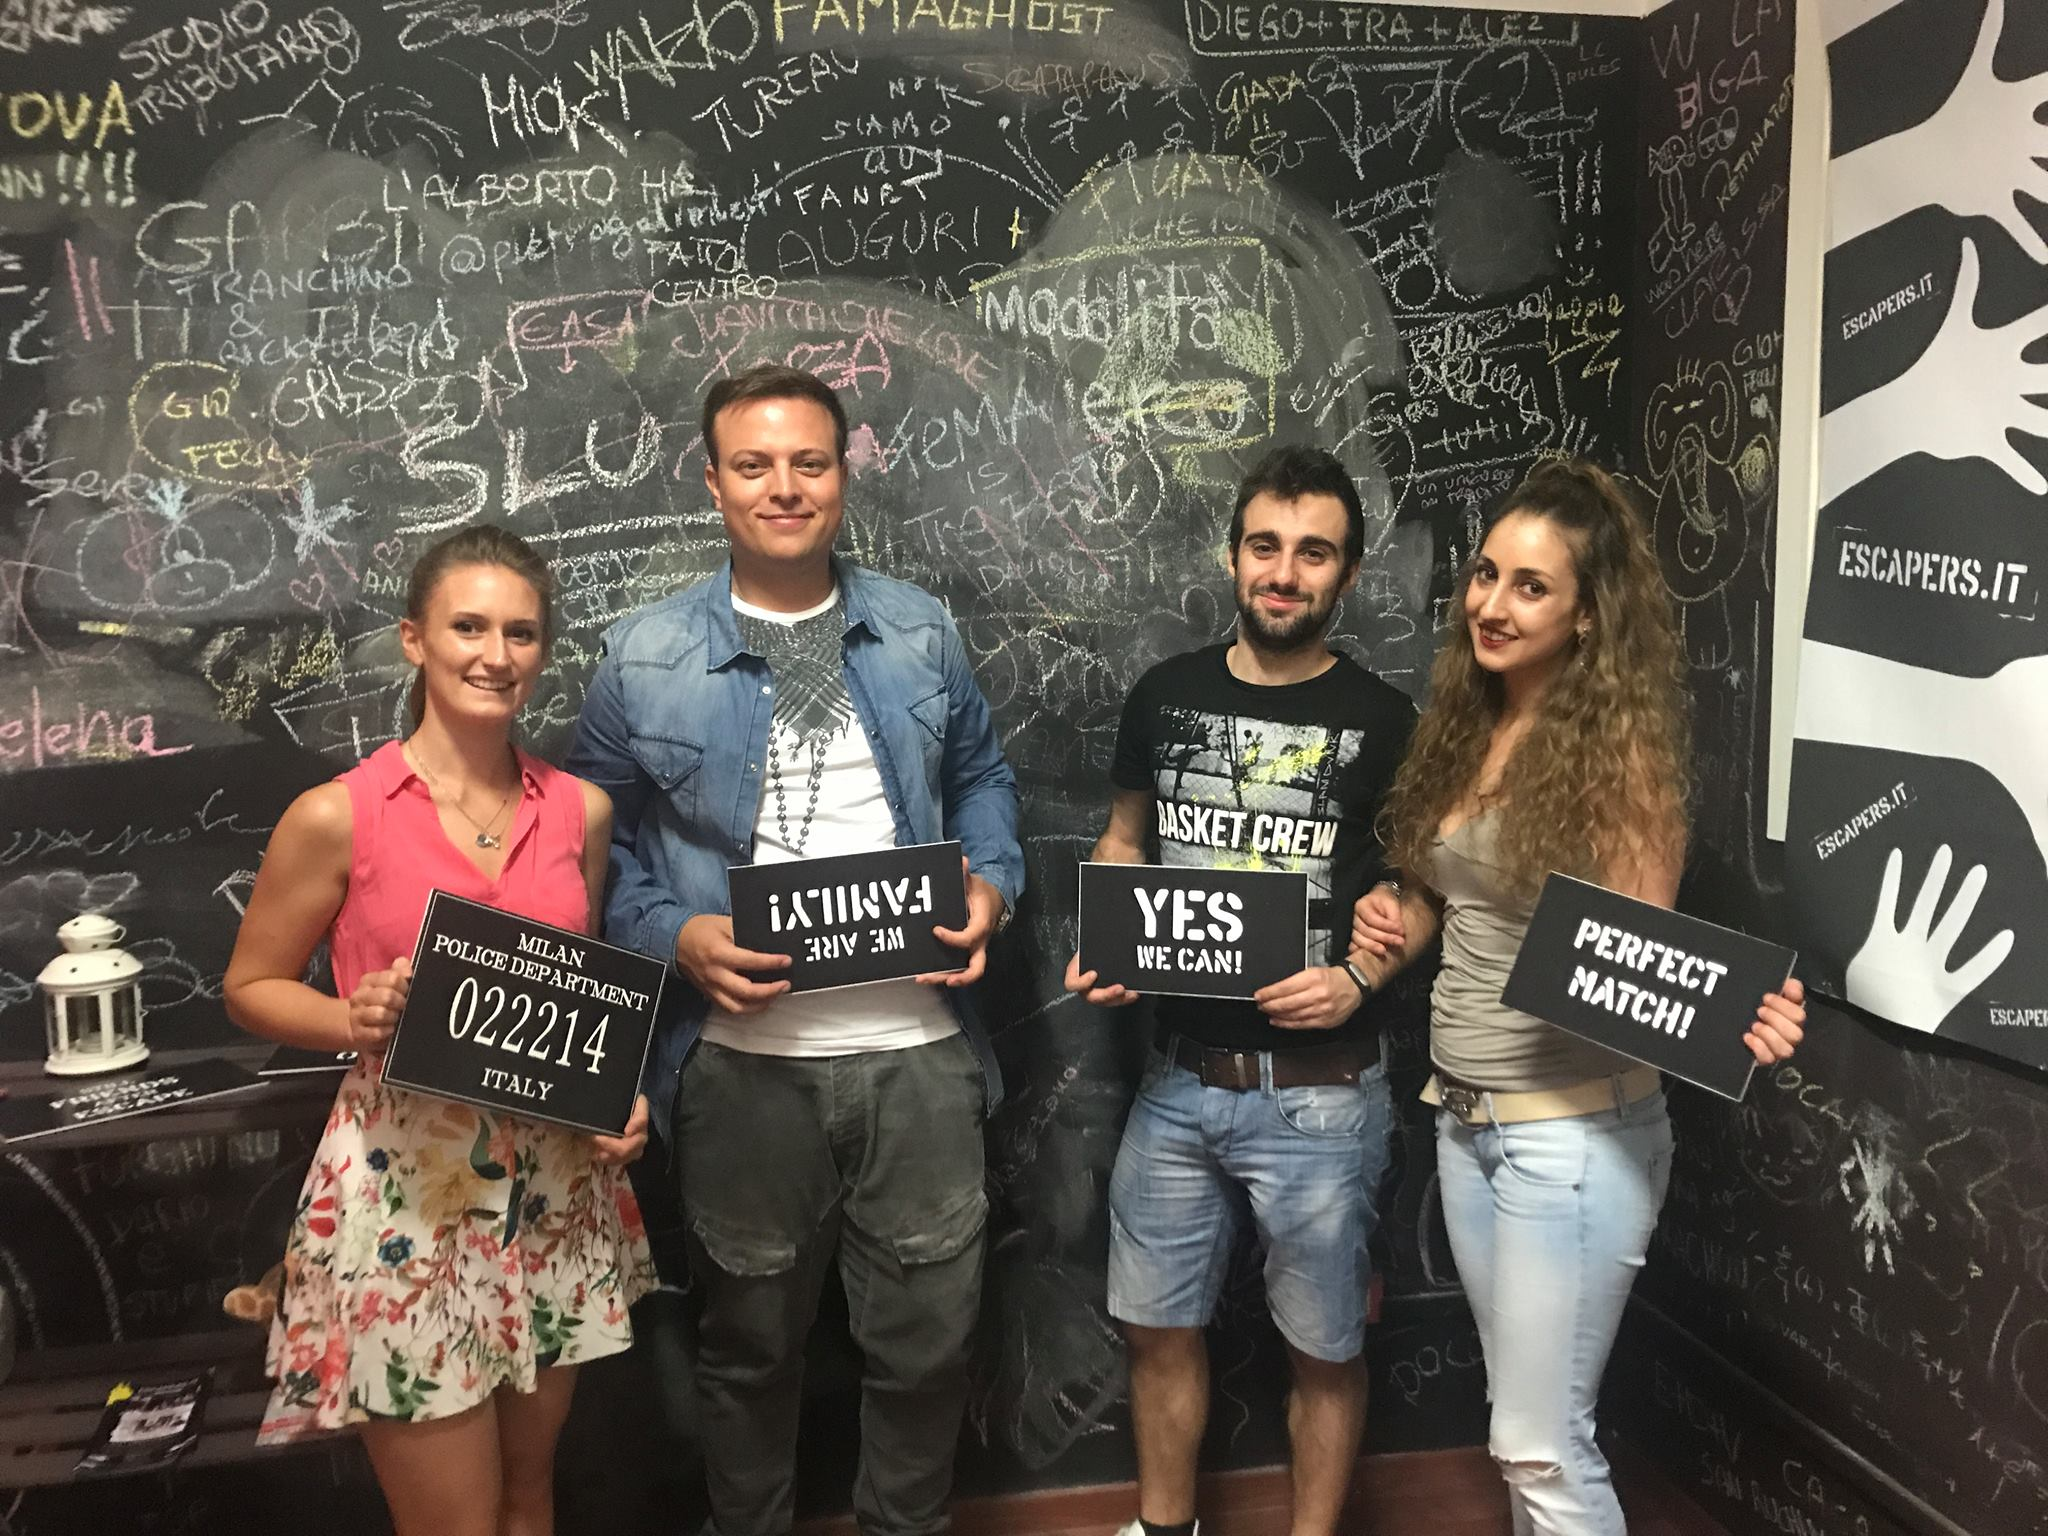 1-Escapers-escape-room-milano-la-prigione-classifica-highlander.jpg